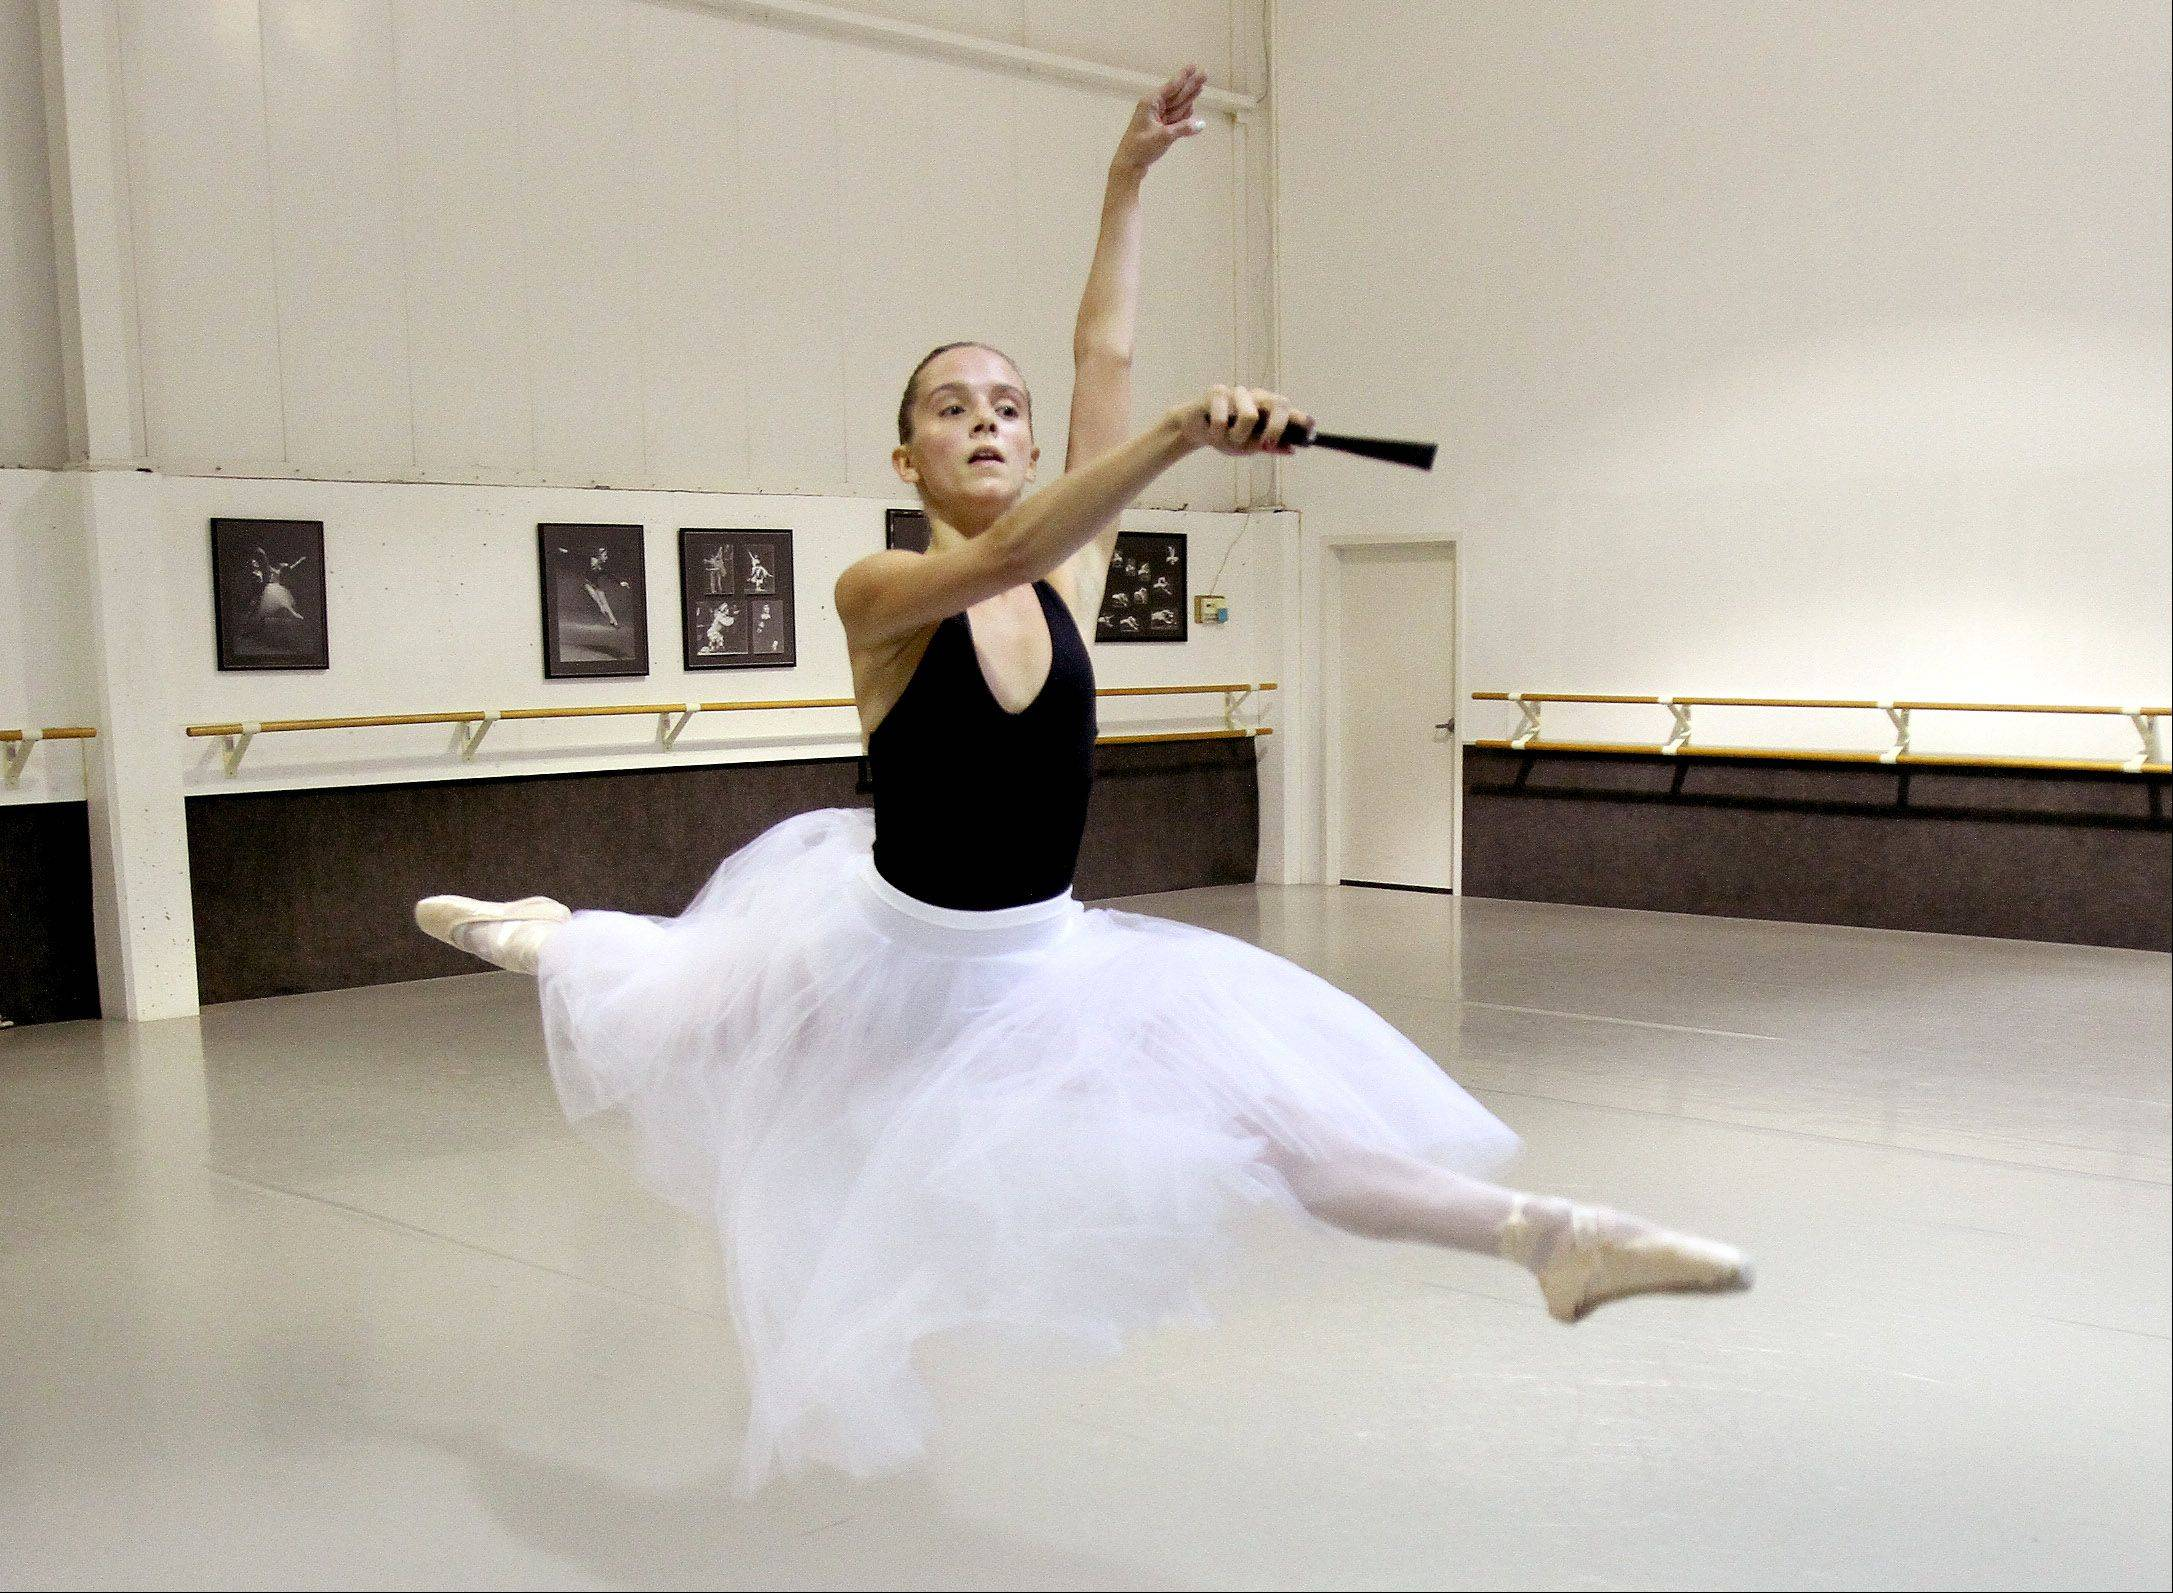 Casimere Jollette, 16, of Addison, trains at the Academy of Dance Arts in Downers Grove.